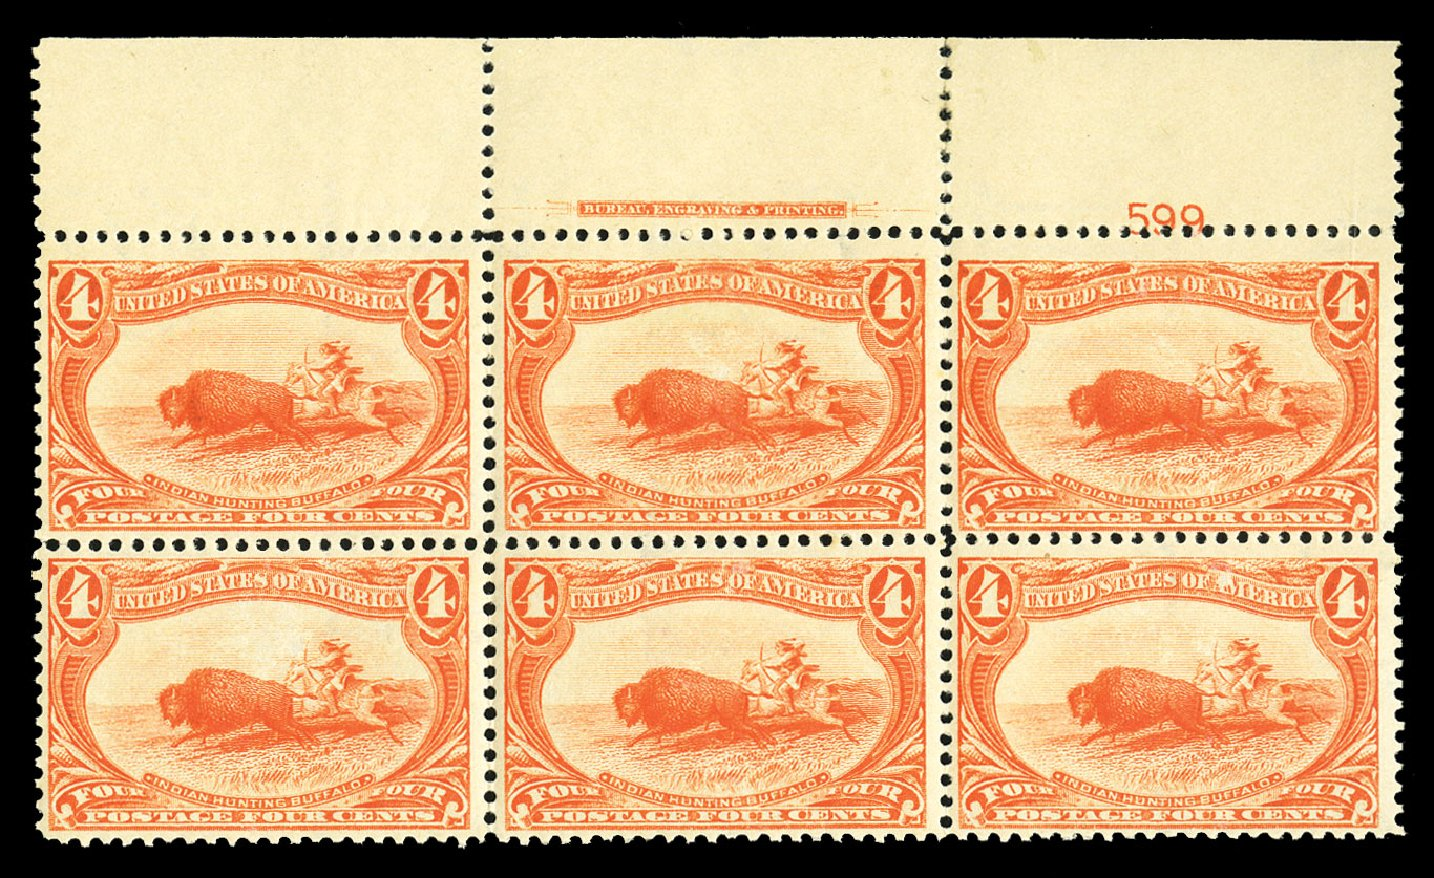 Costs of US Stamps Scott Cat. # 287 - 1898 4c Trans Mississippi Exposition. Cherrystone Auctions, Jul 2015, Sale 201507, Lot 2097